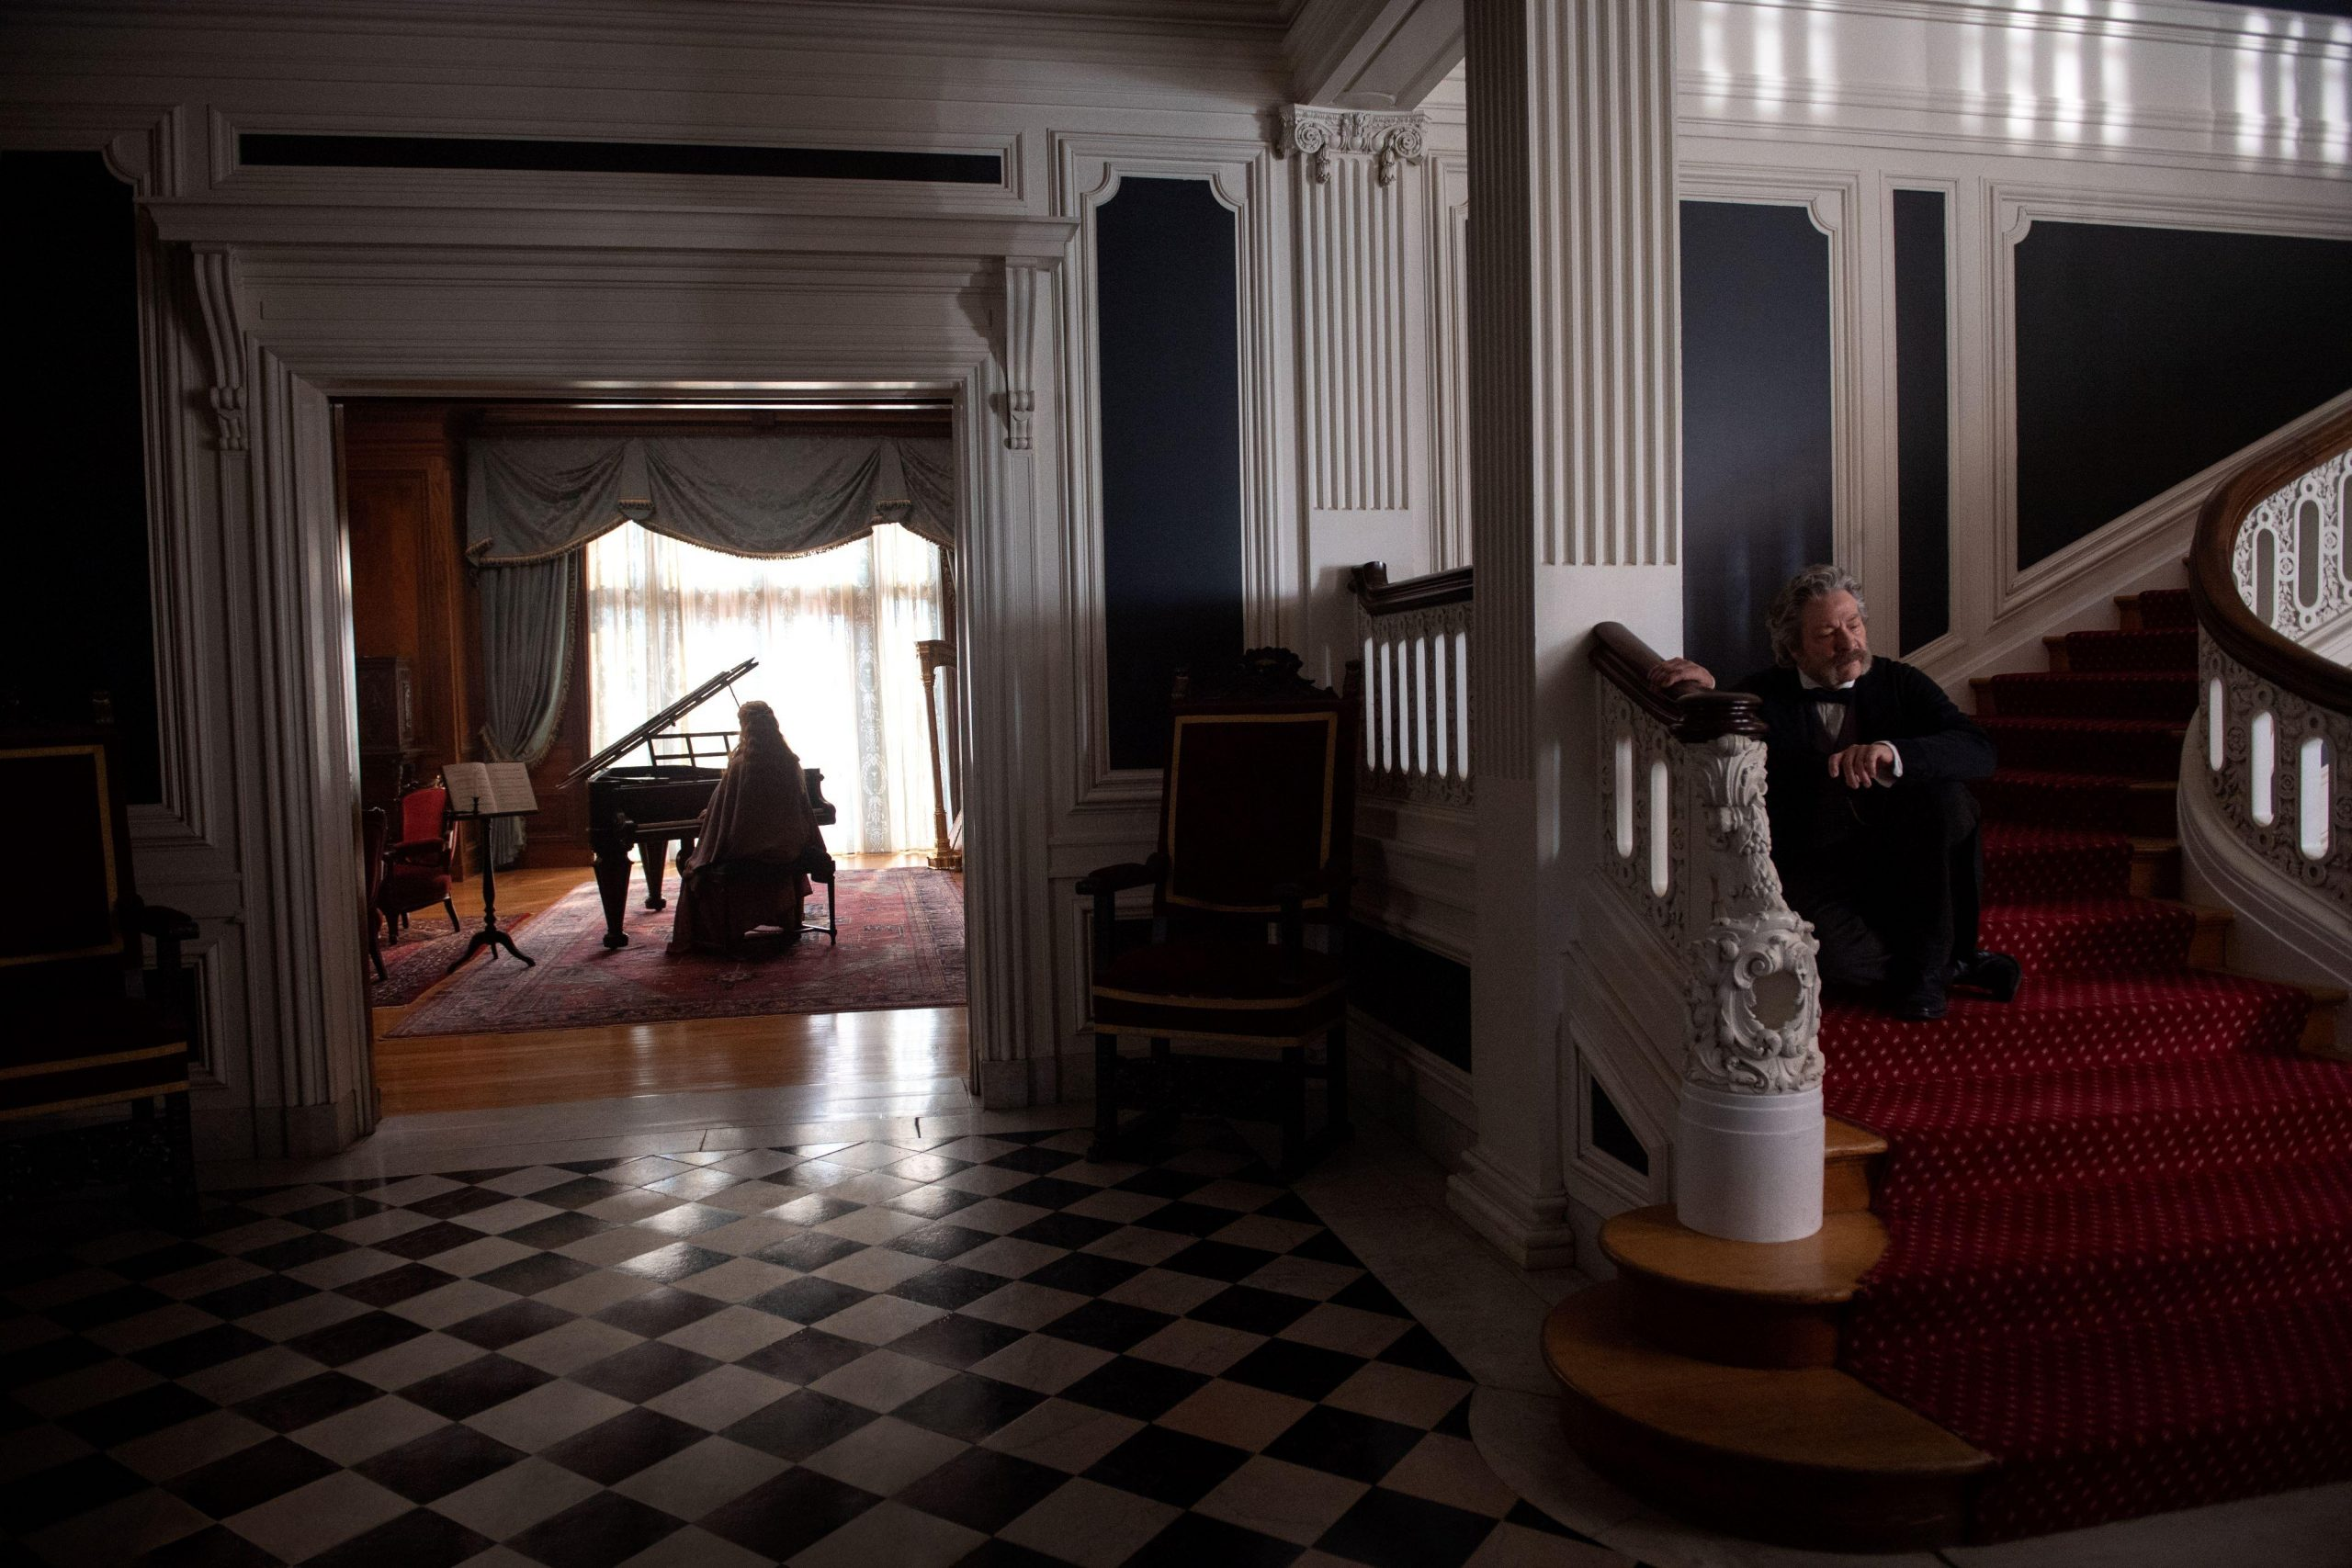 Little Women (2019): Beth plays the grand piano in the Lawrence mansion while Mr. Lawrence listens